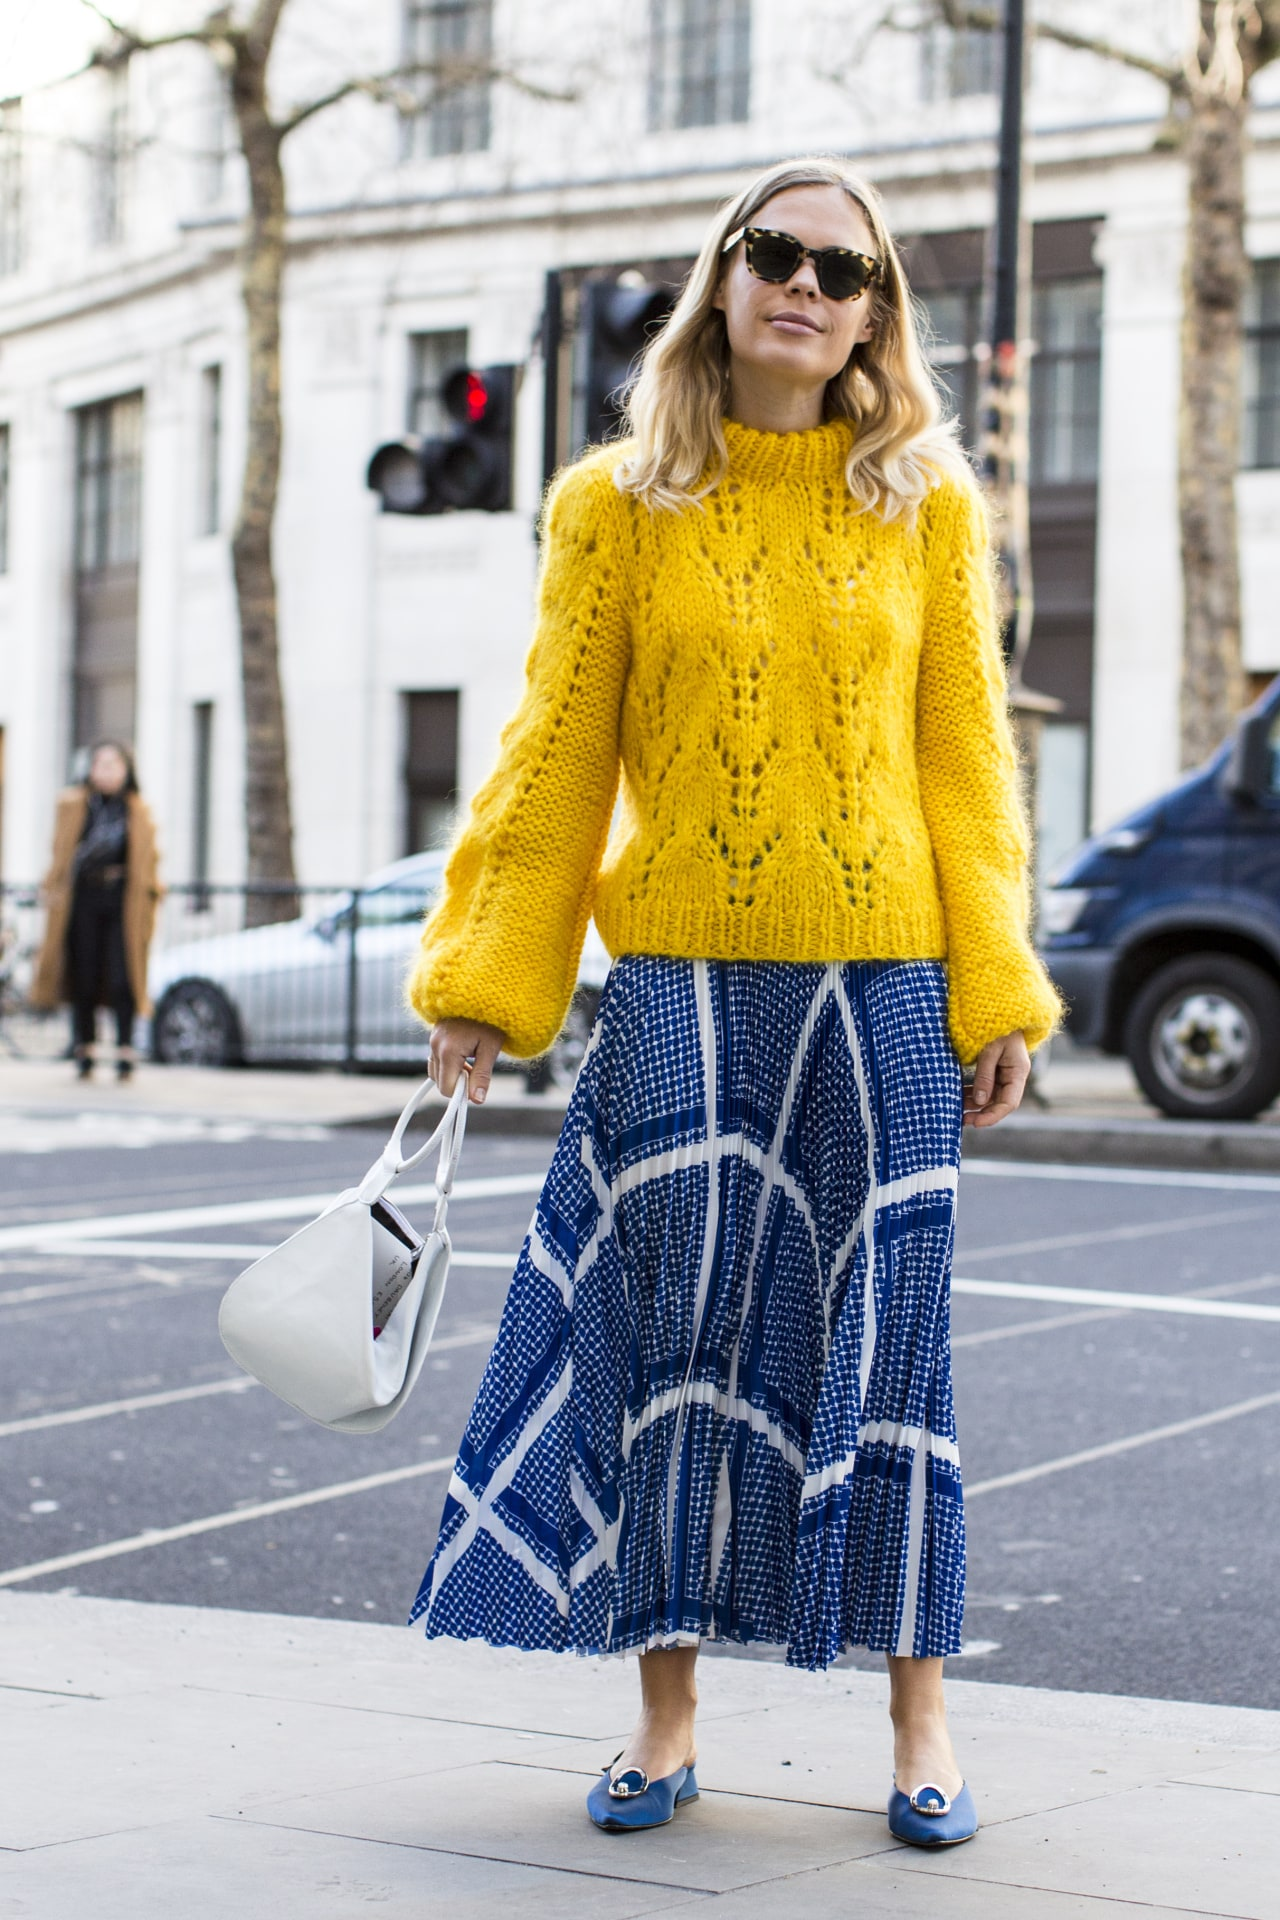 What they're wearing on the streets of London this Fashion Week